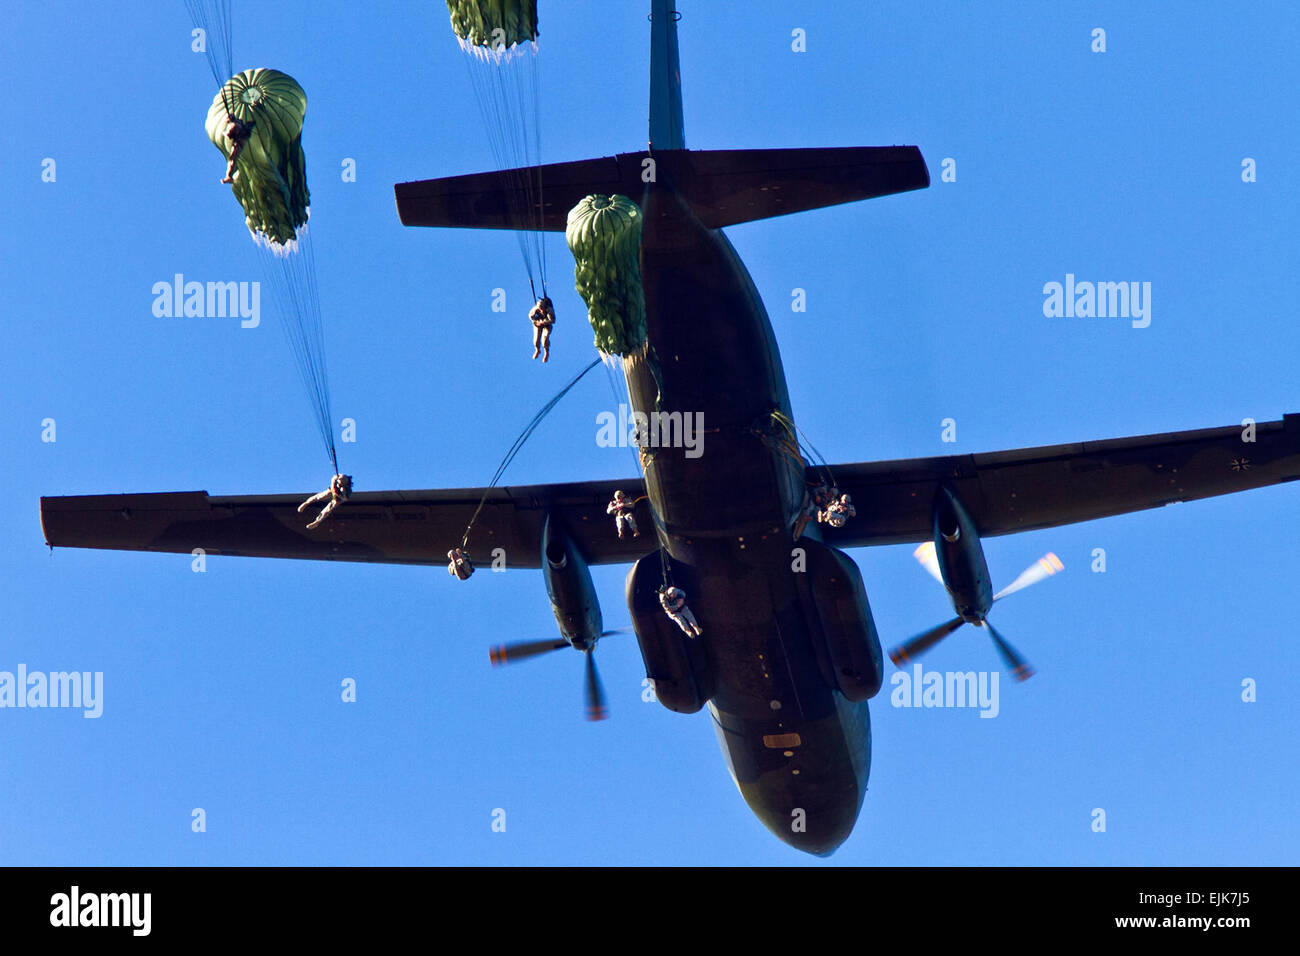 Paratroopers with the 82nd Airborne Division exit a German C-160 aircraft over Sicily Drop Zone on Fort Bragg, N.C., - Stock Image